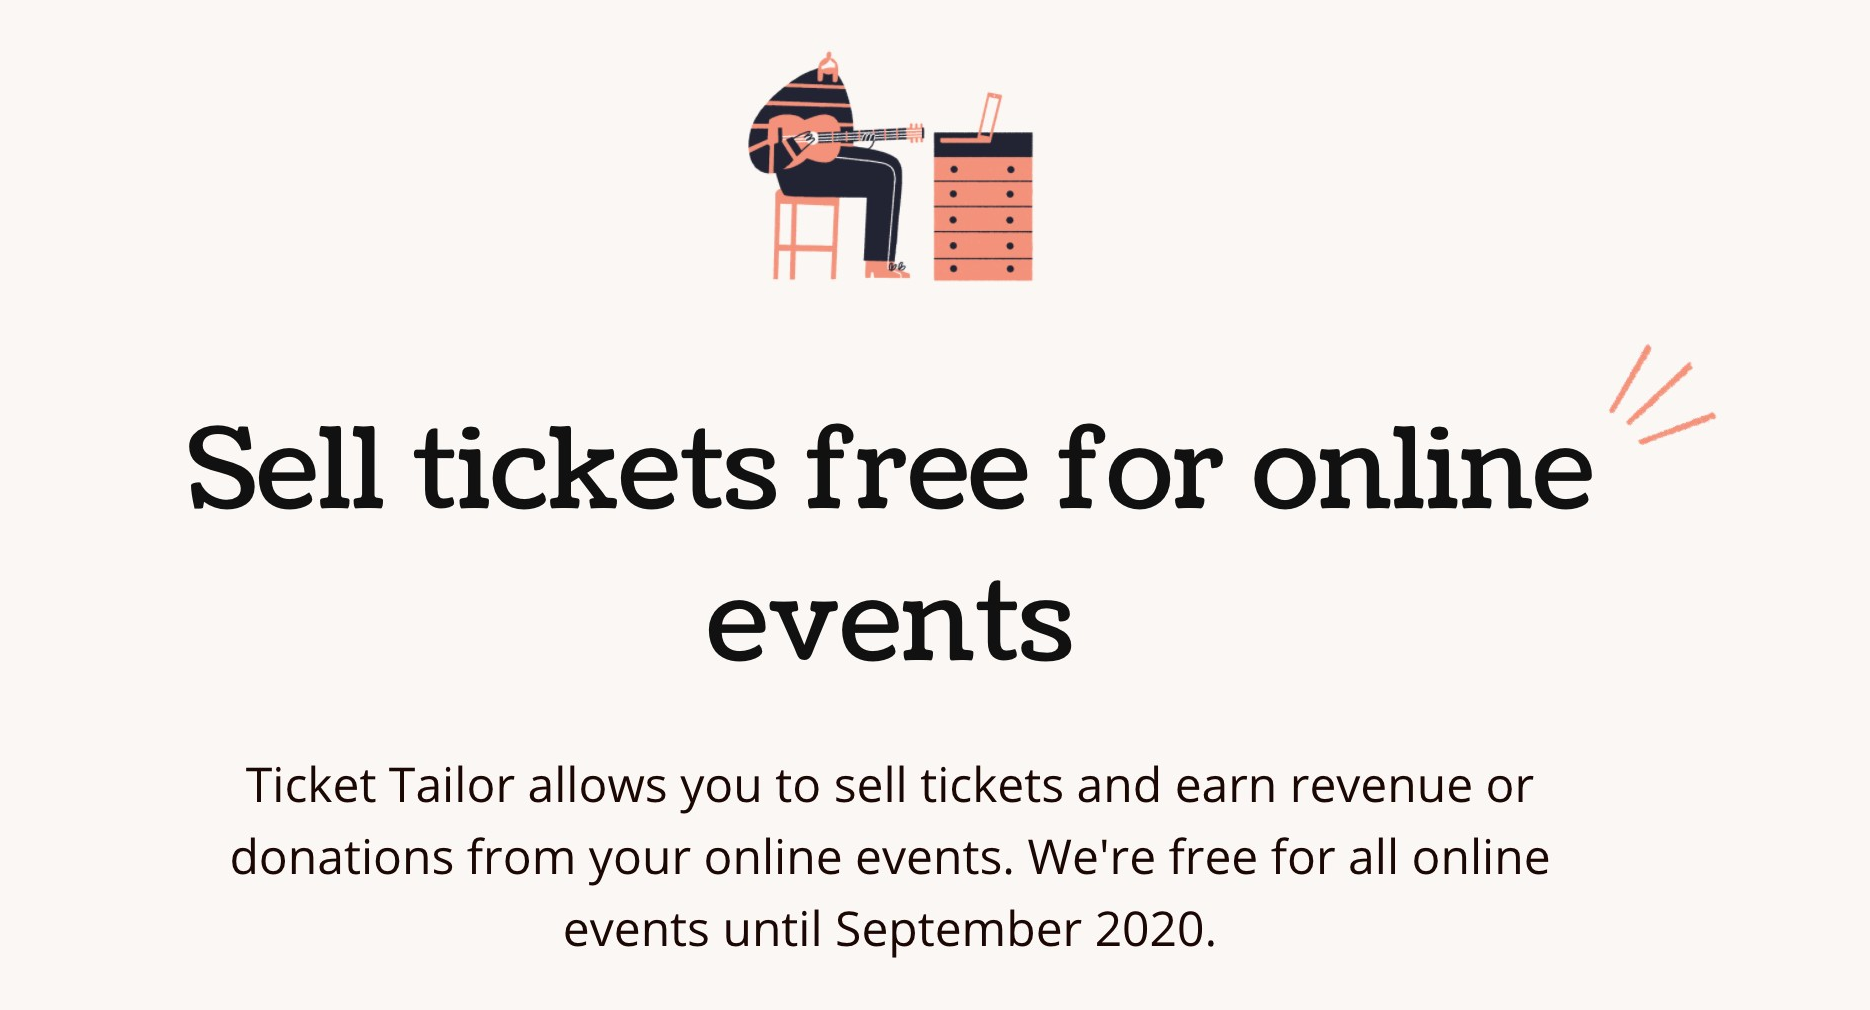 Ticket Tailor - Sell tickets free for online events